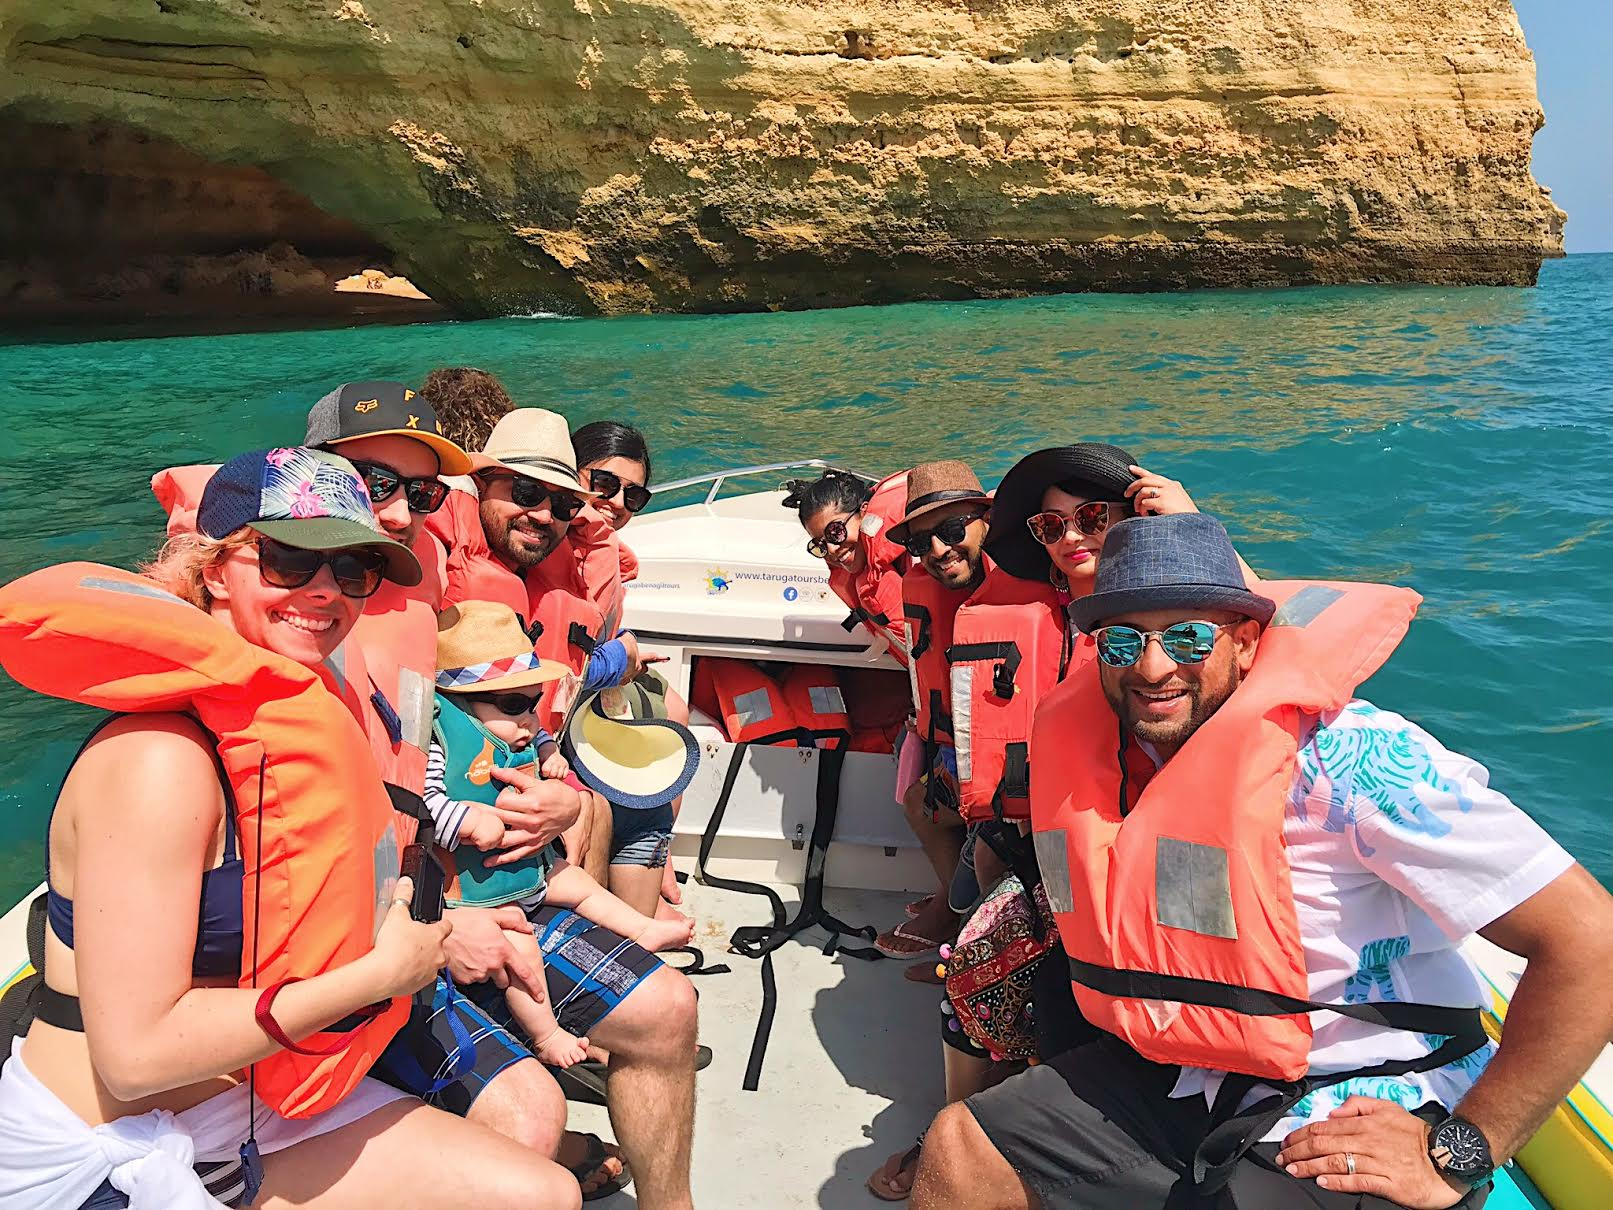 Muslim-travel-recommendations-Algarve-Portugal-Benagil-cave-boat-tour